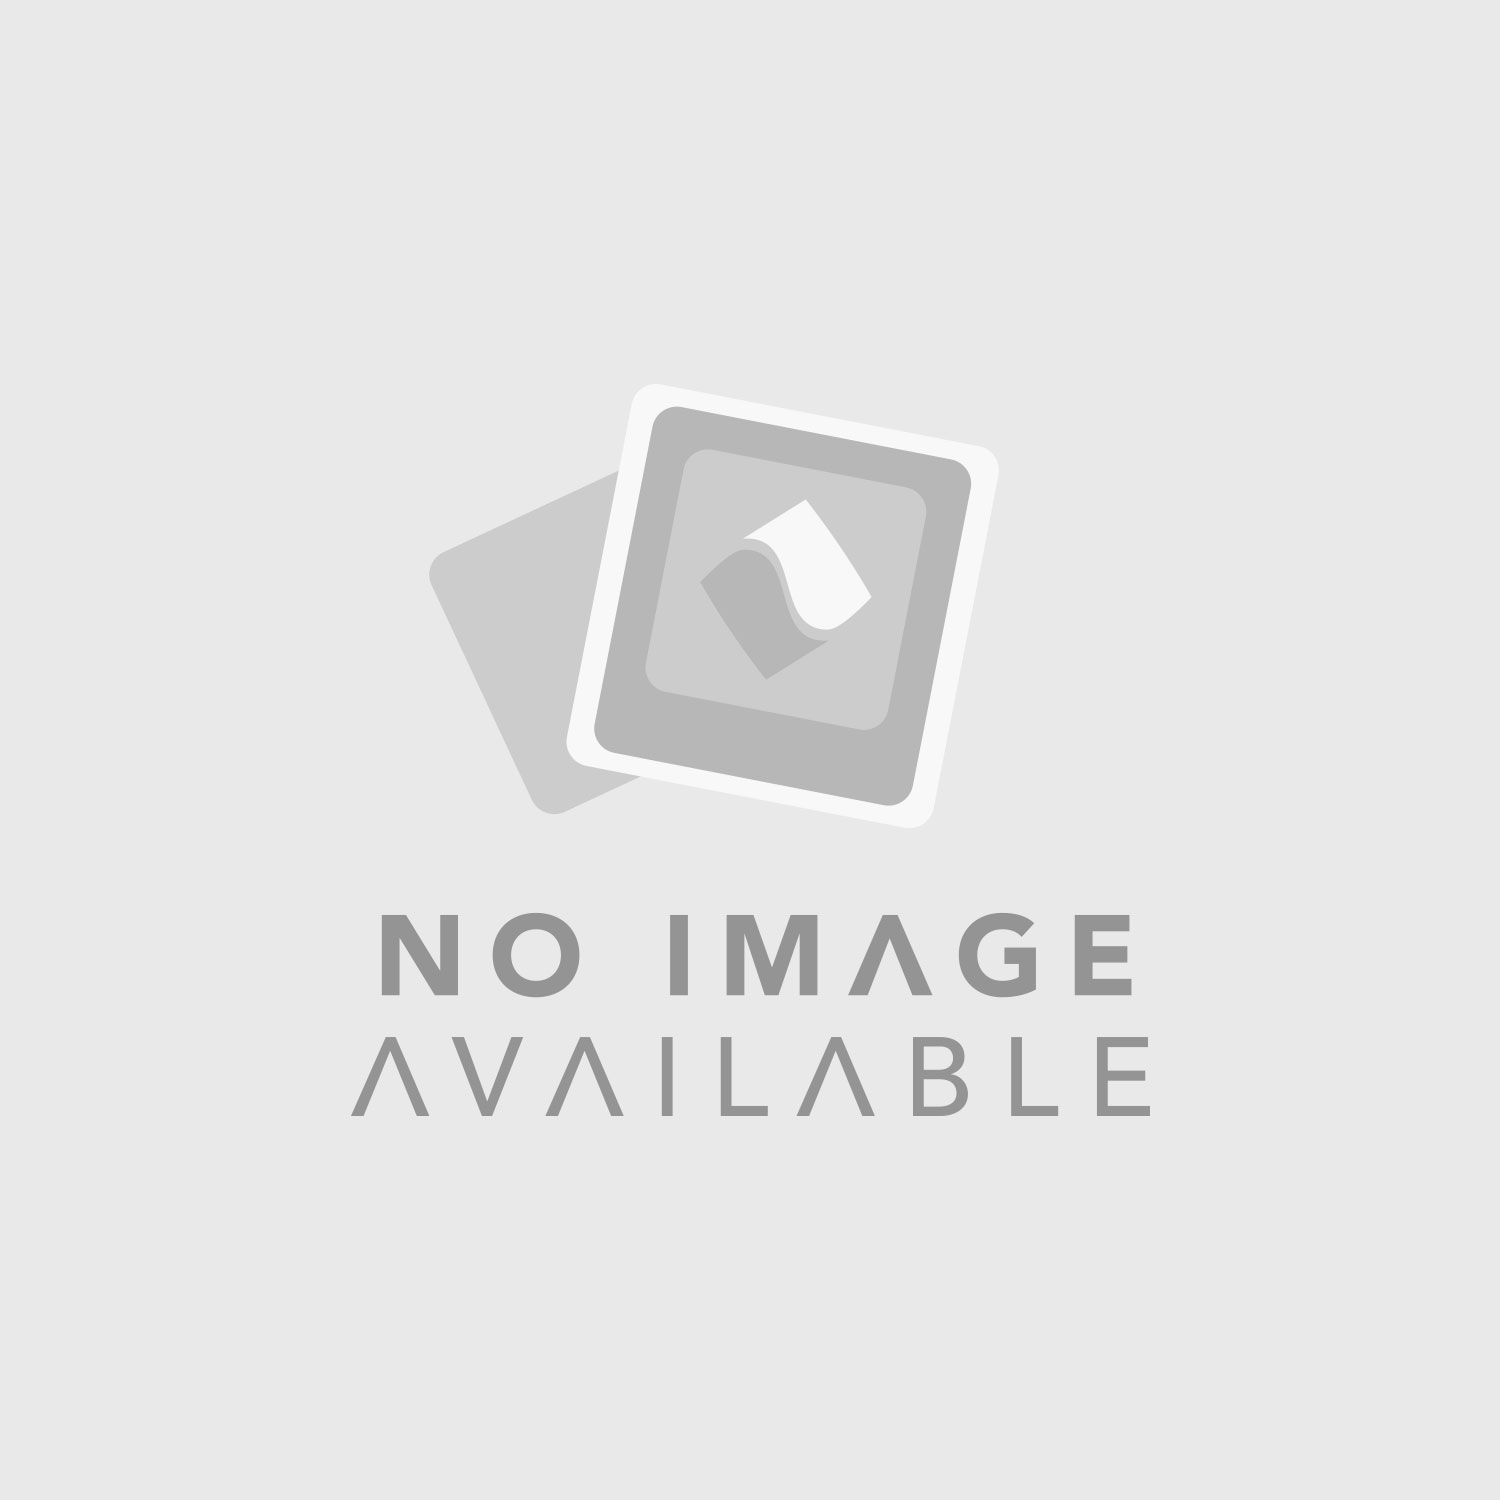 Froggys Fog Big Bubble Juice (1 Gallon)